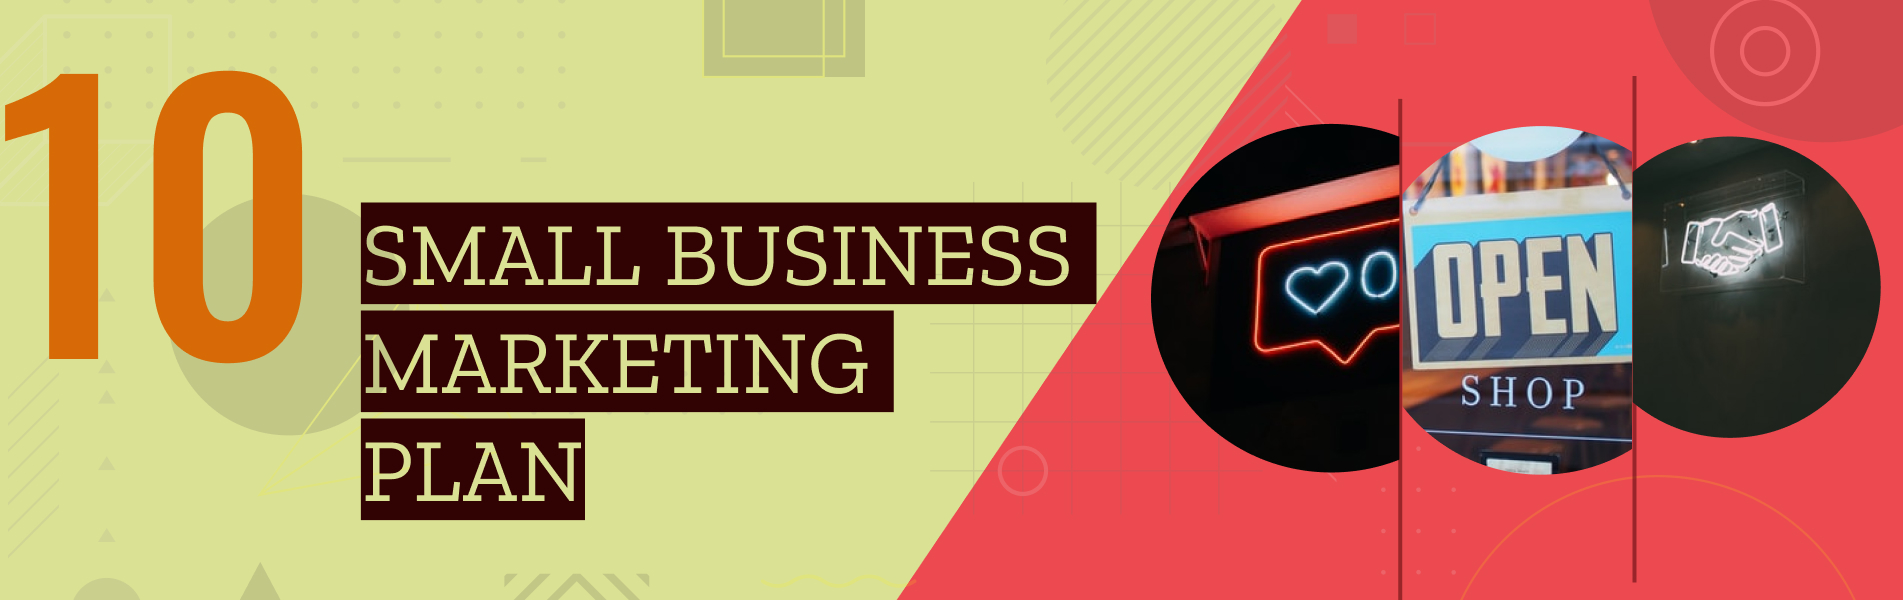 10 Small Business Marketing Tips